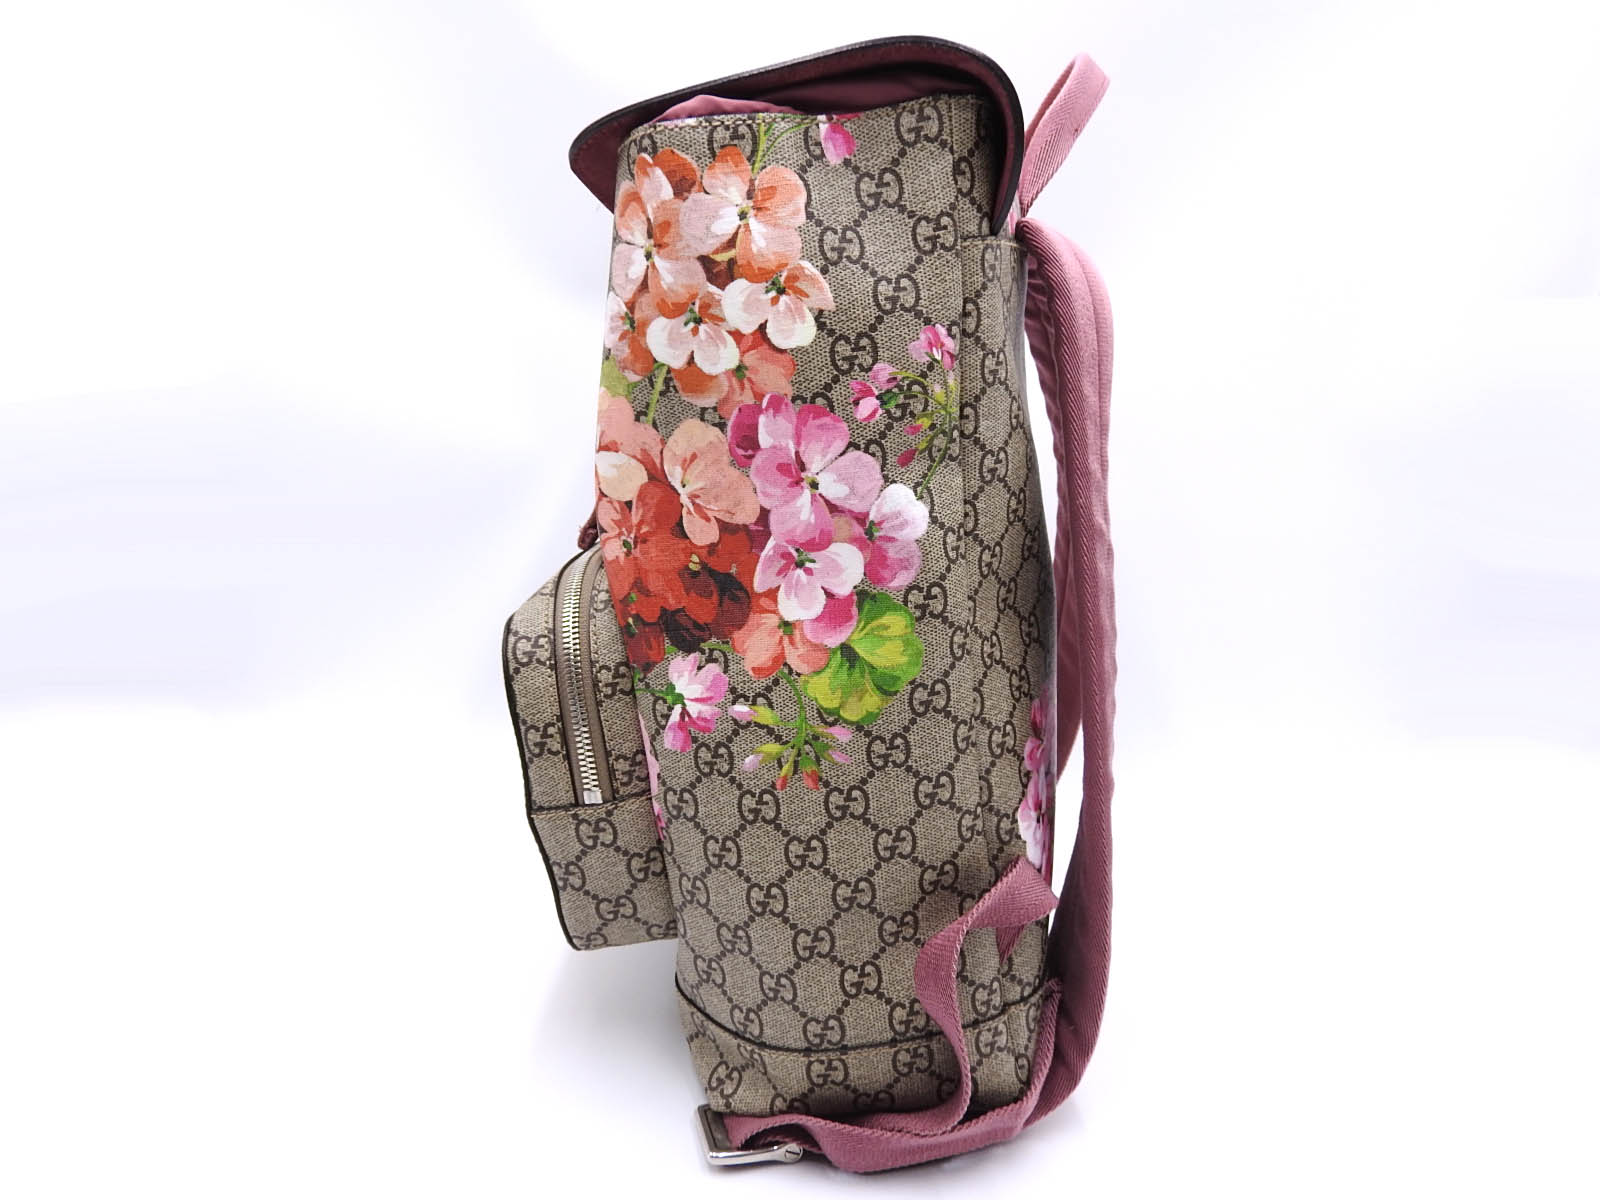 e3a8d9c326b9 Auth GUCCI GG Blooms Supreme Backpack Bag PVC Leather Pink Red Beige ...